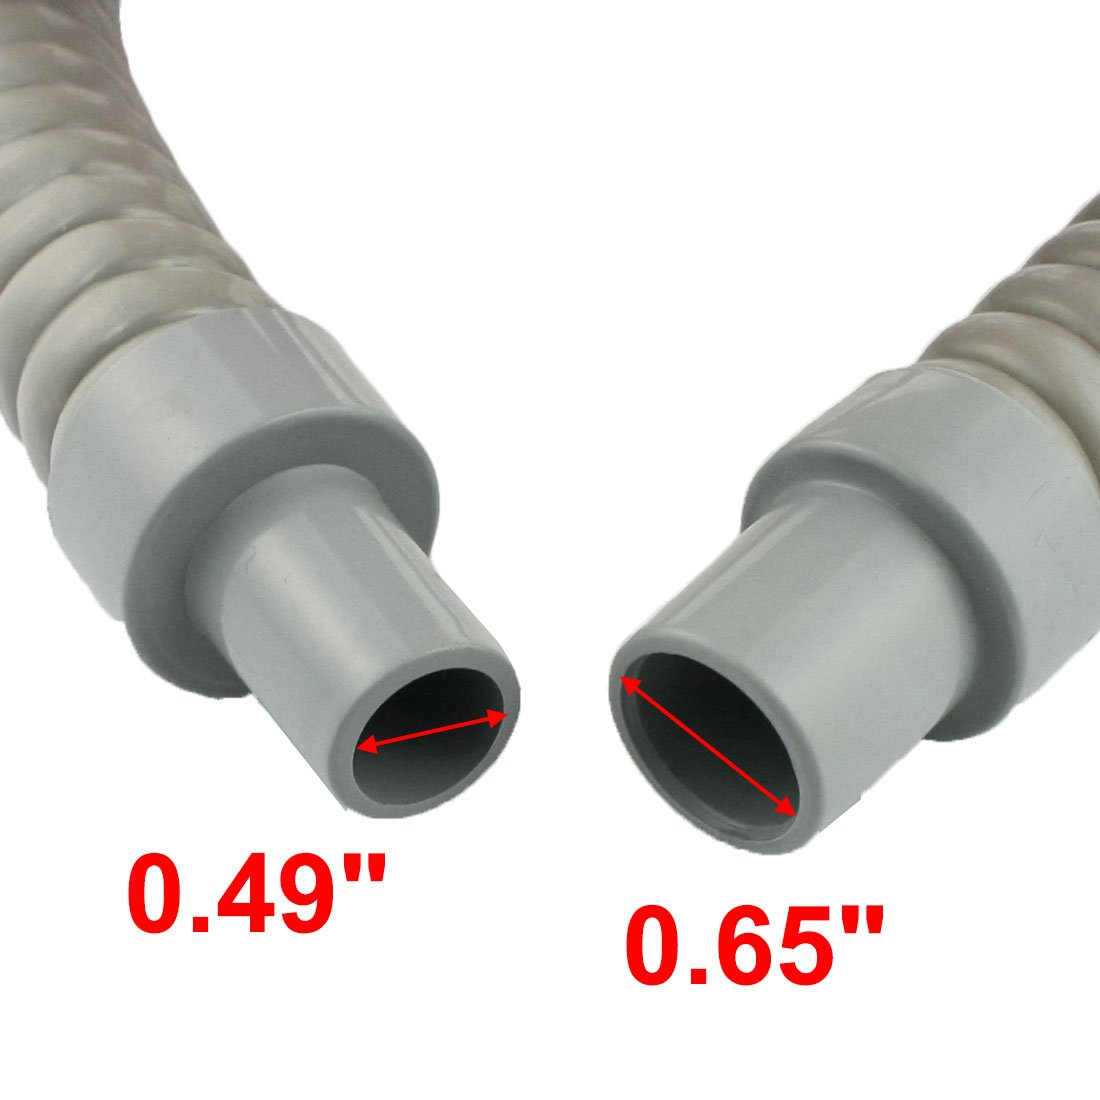 Plastic Water Drain Pipe Hose for Air Conditioner 60cm Long Gray